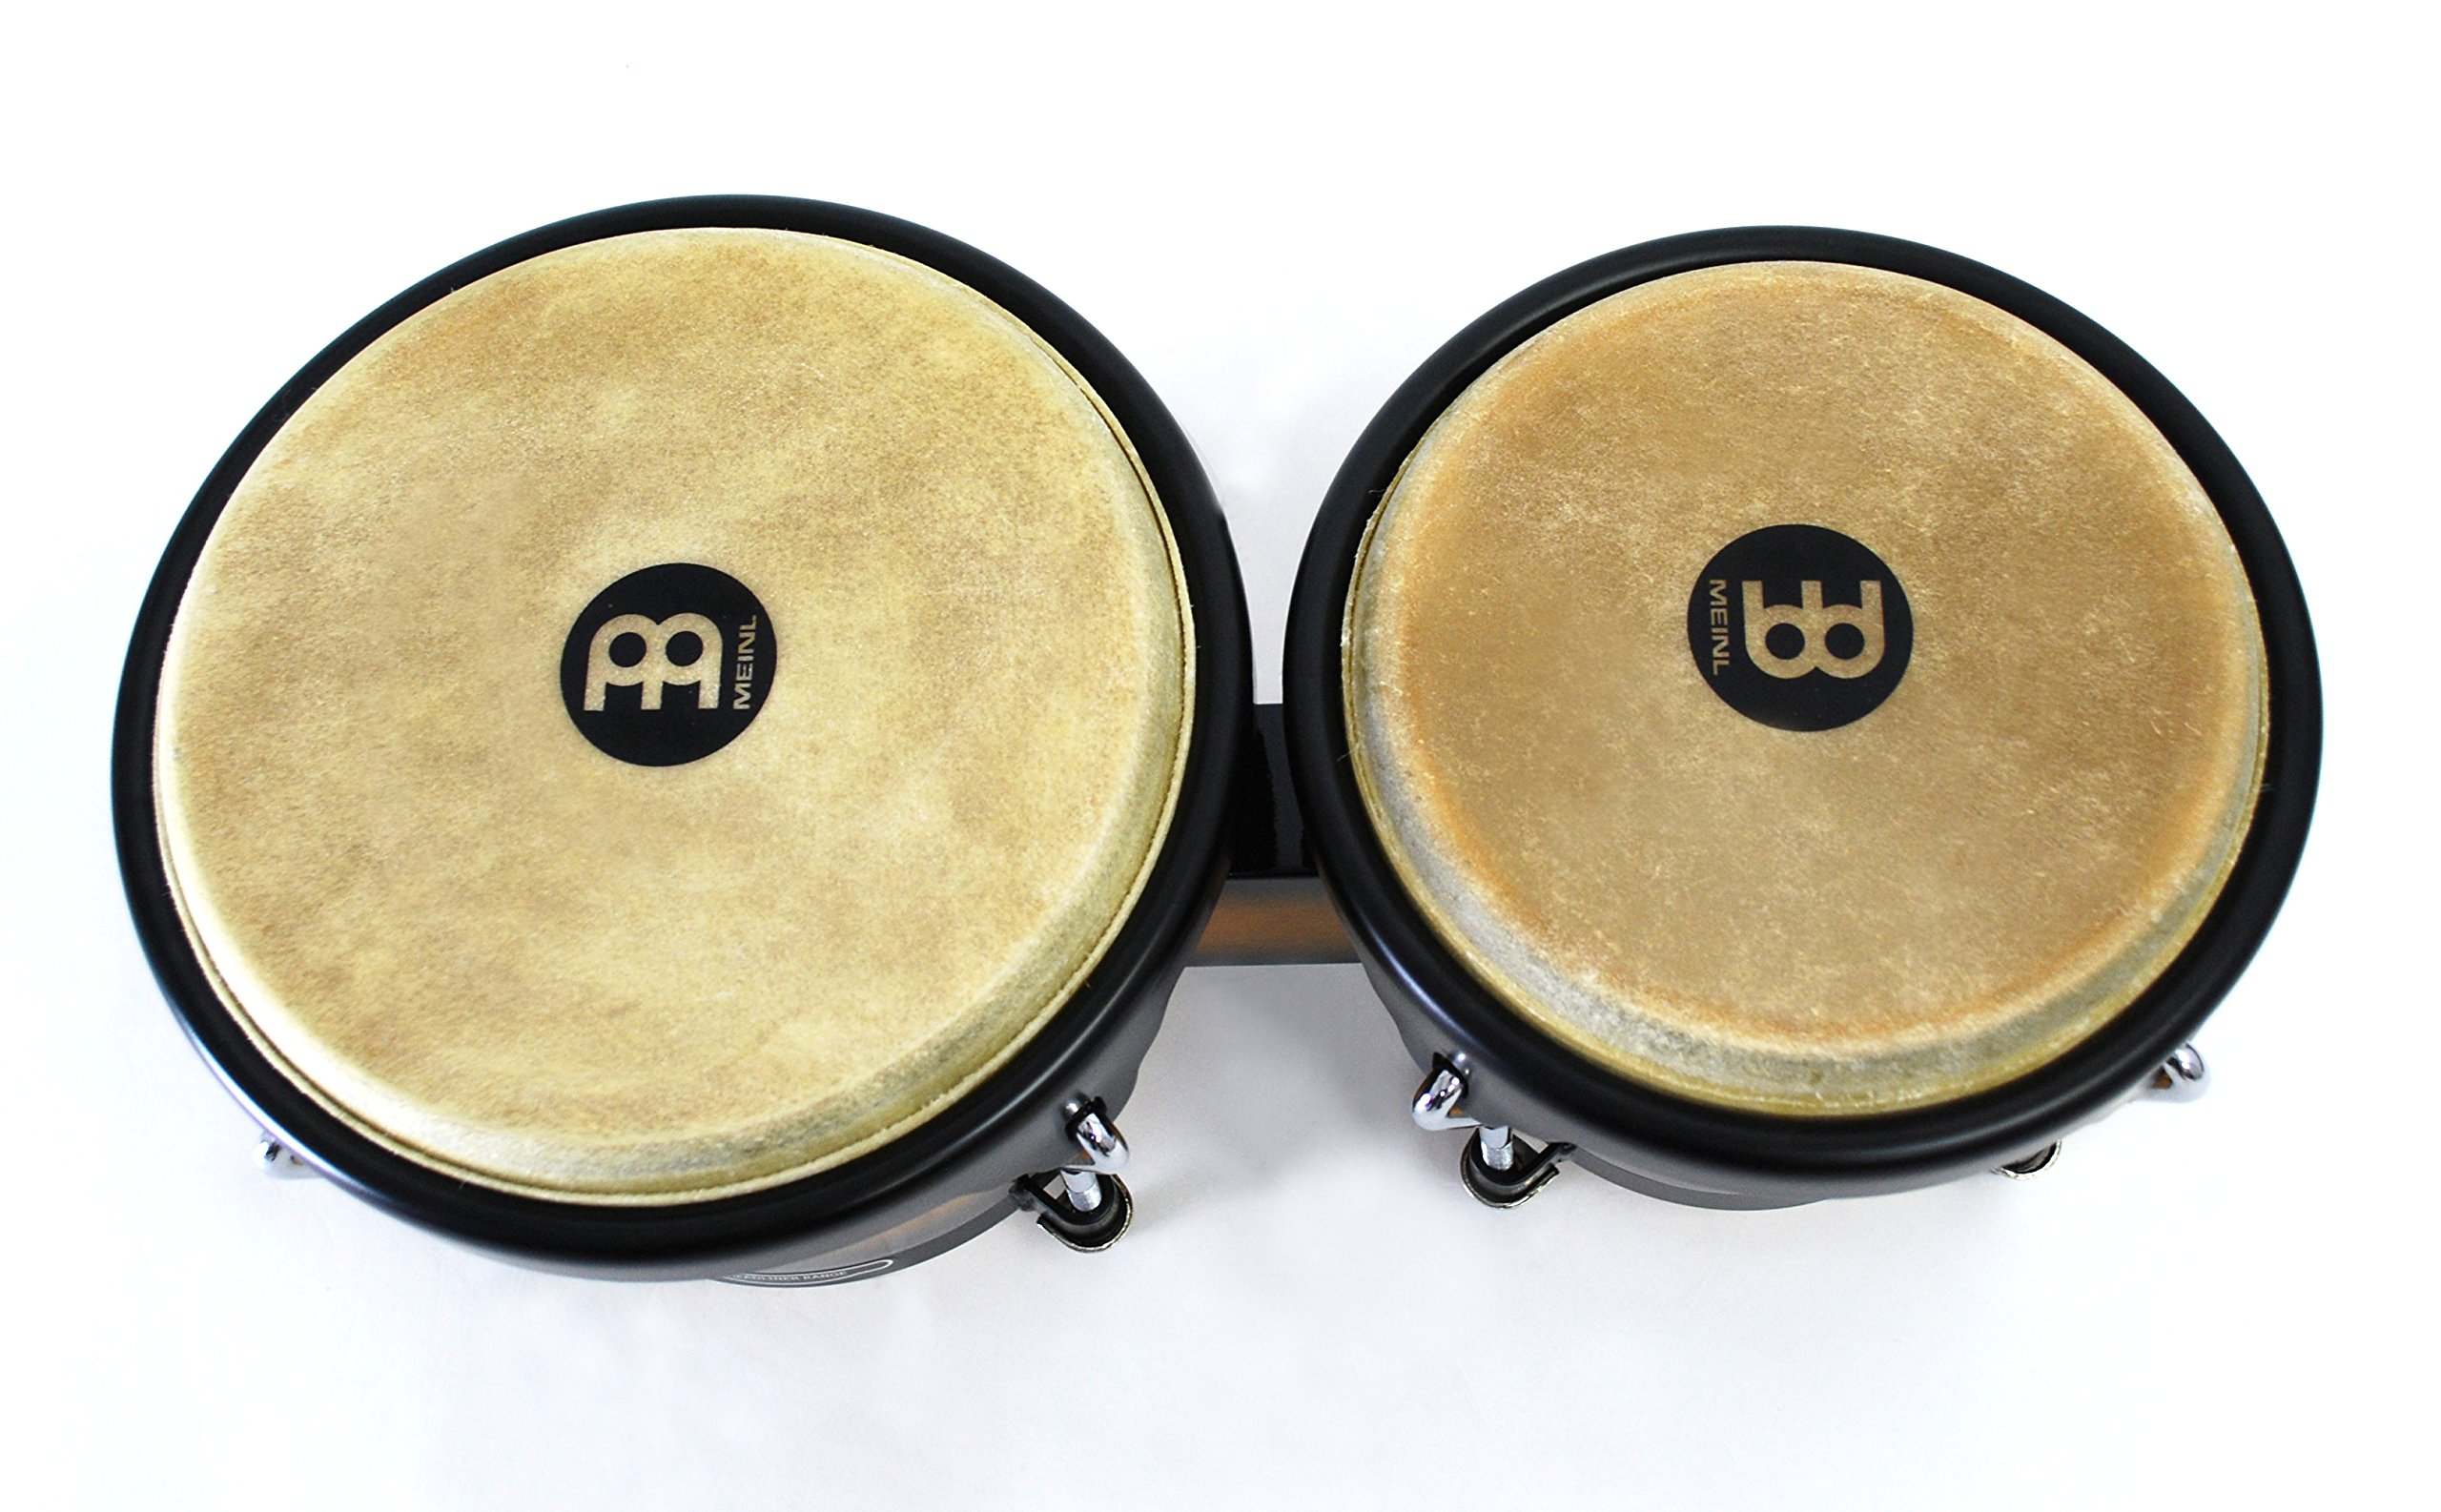 Meinl Percussion Bongos With Hardwood Shells - NOT MADE IN CHINA - Vintage Sun burst Finish, Buffalo Skin Heads, 2-YEAR WARRANTY HB100VSB by Meinl Percussion (Image #4)